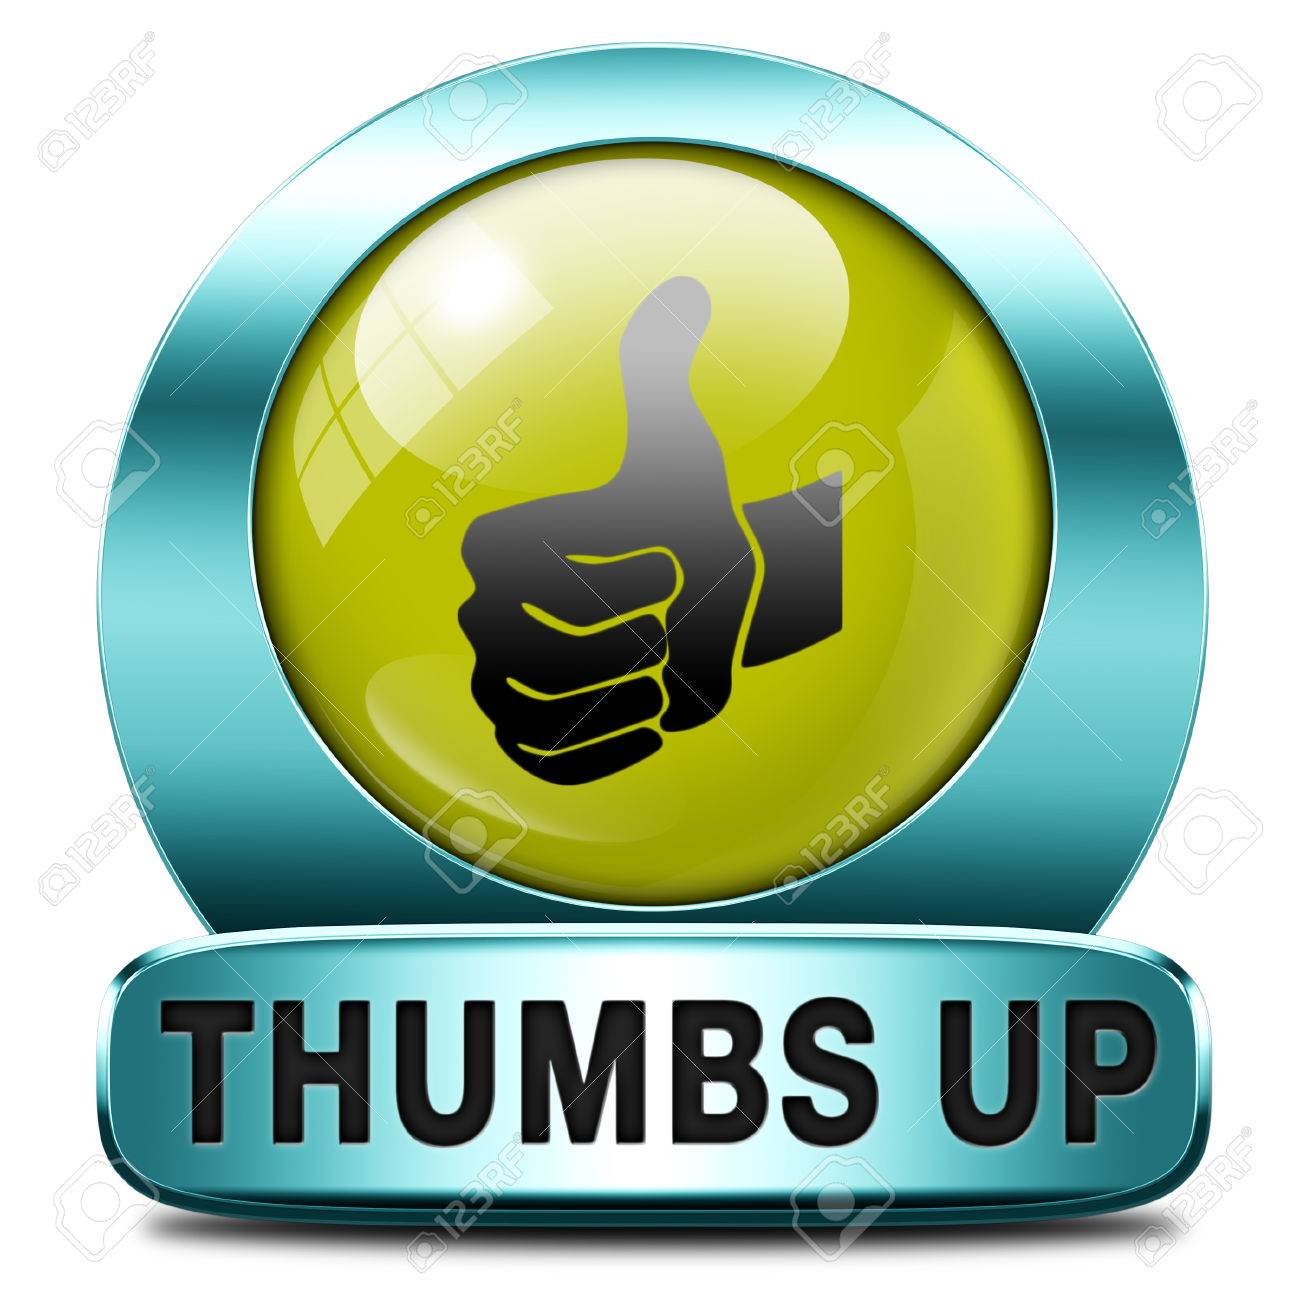 Thumbs Up Good And Excellent Work Job Well Done And Task Finished Stock Photo Picture And Royalty Free Image Image 26969101